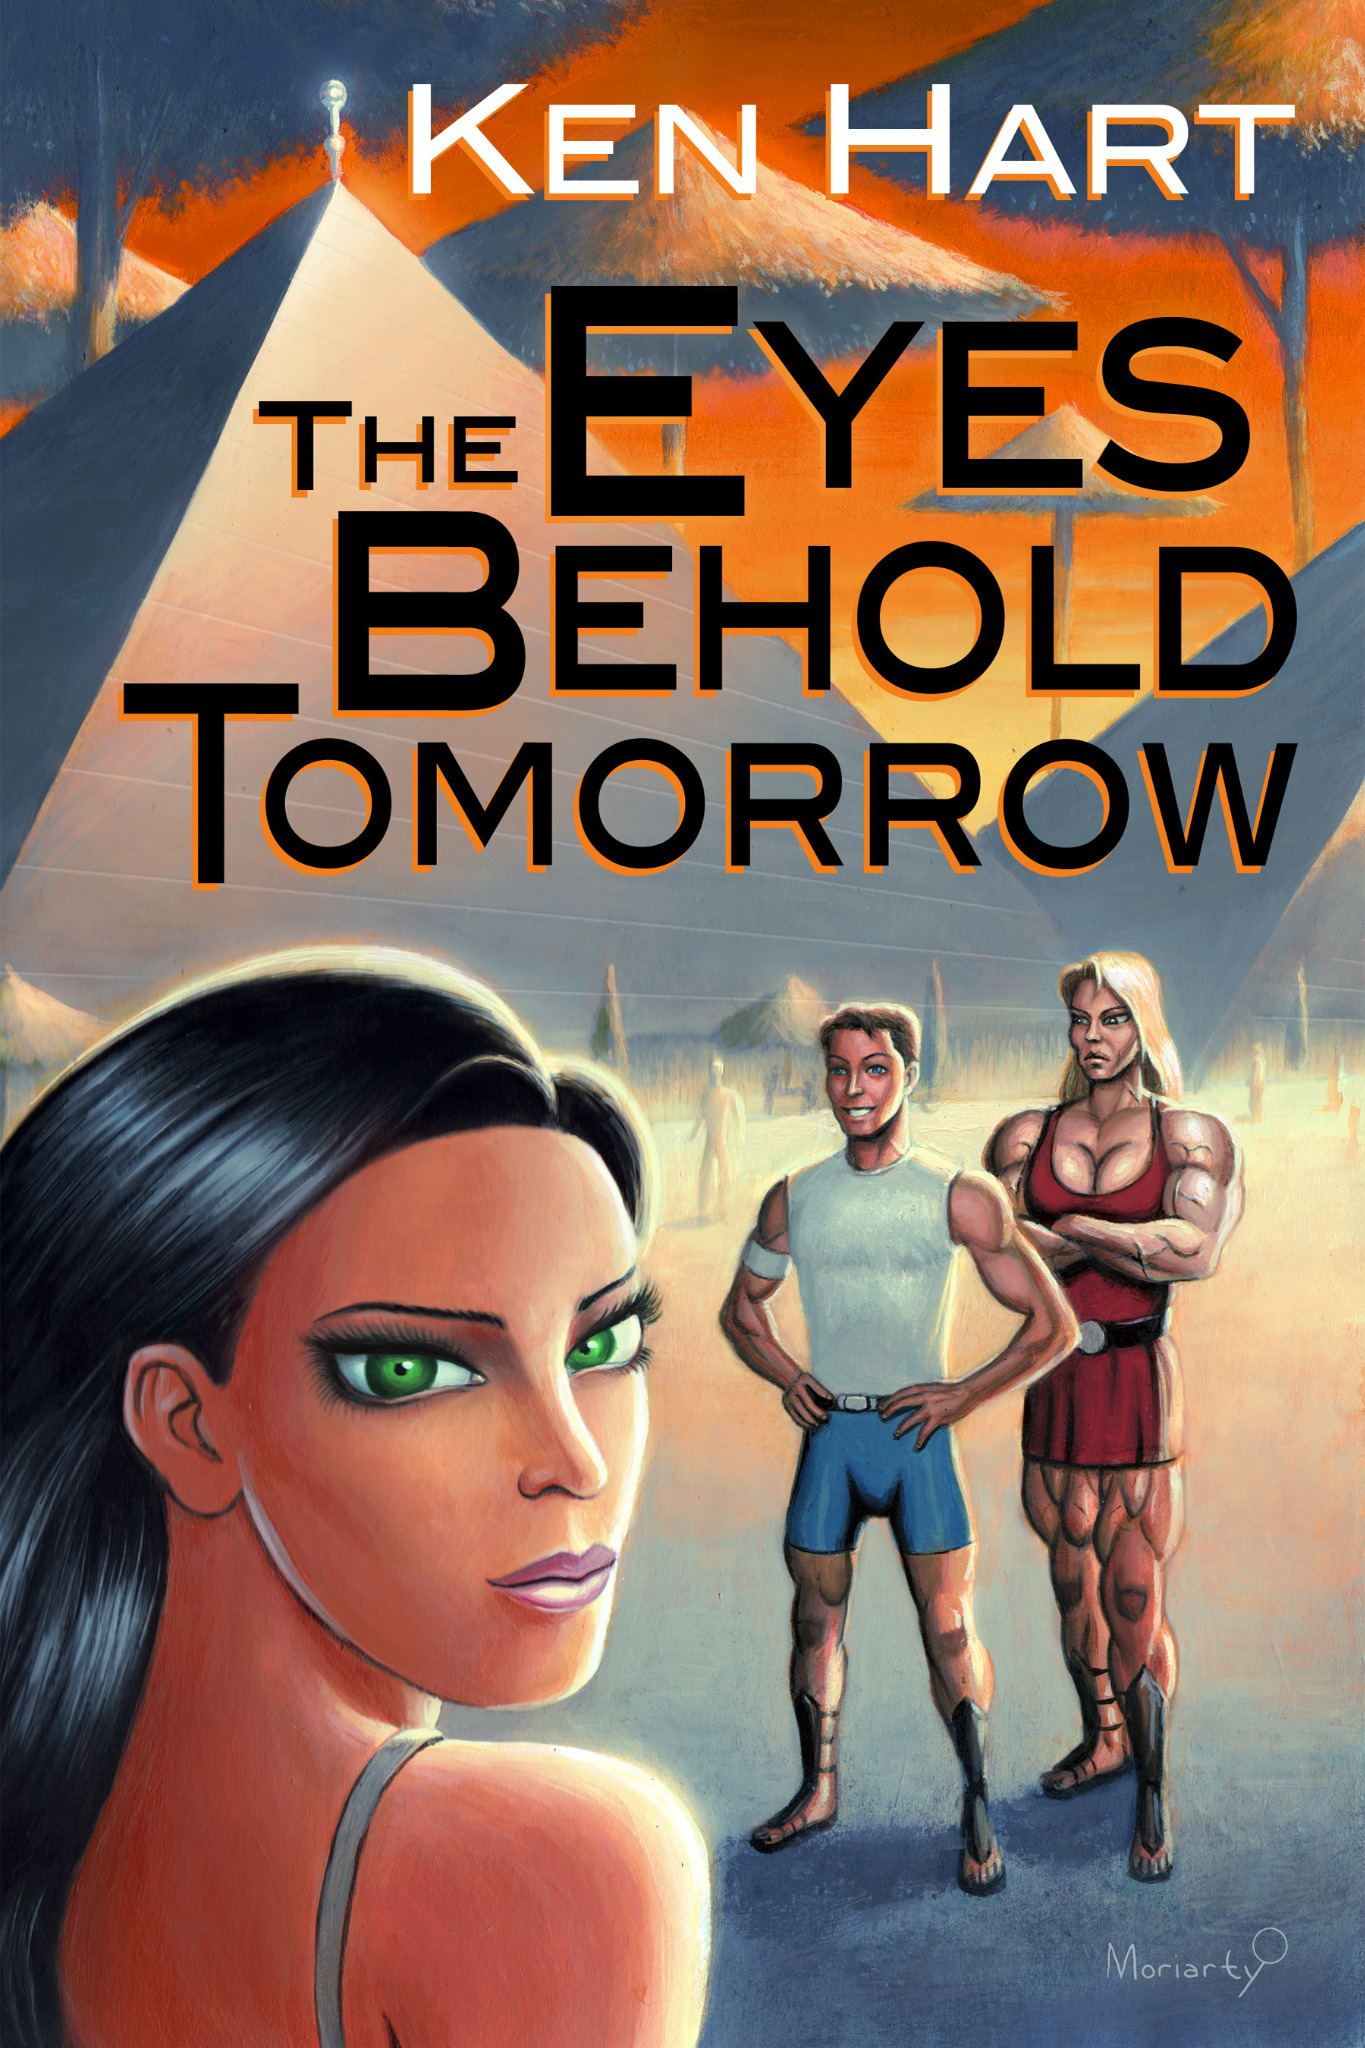 The Eyes Behold Tomorrow